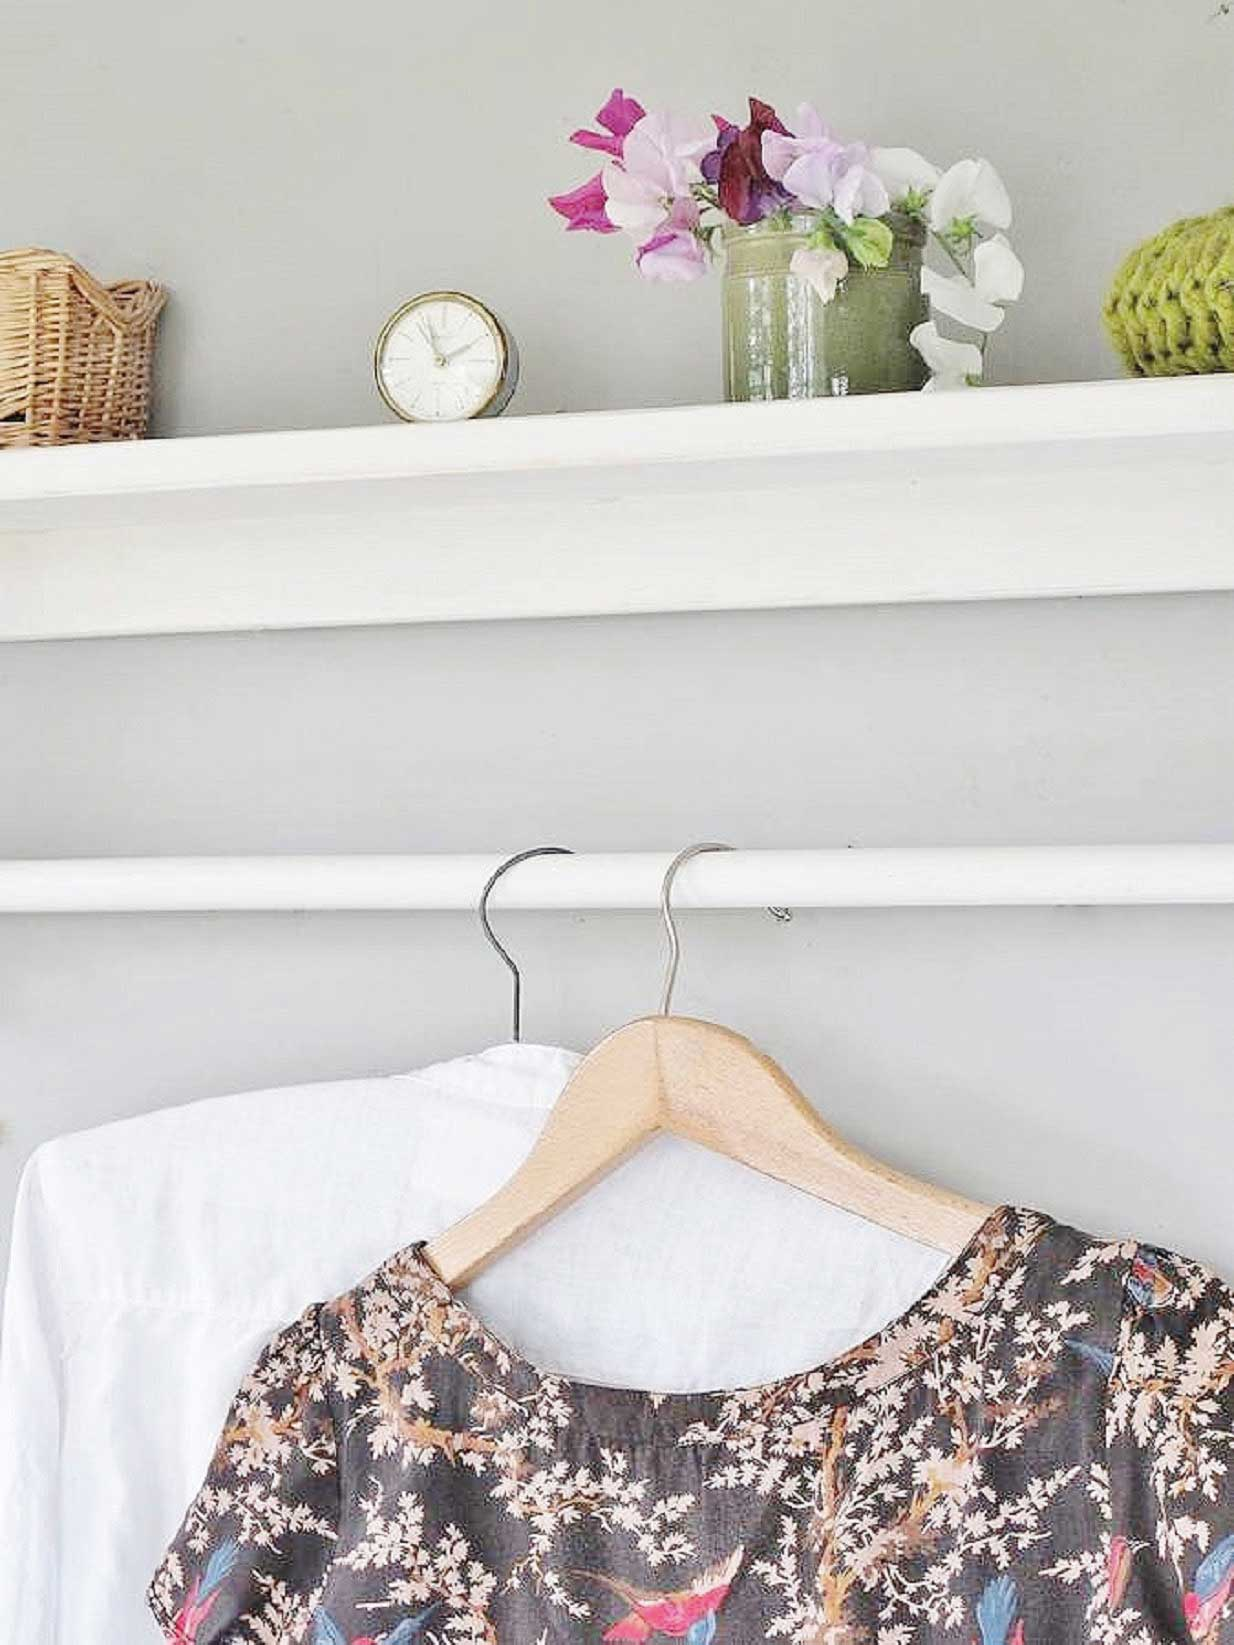 Shelf and clothes rail